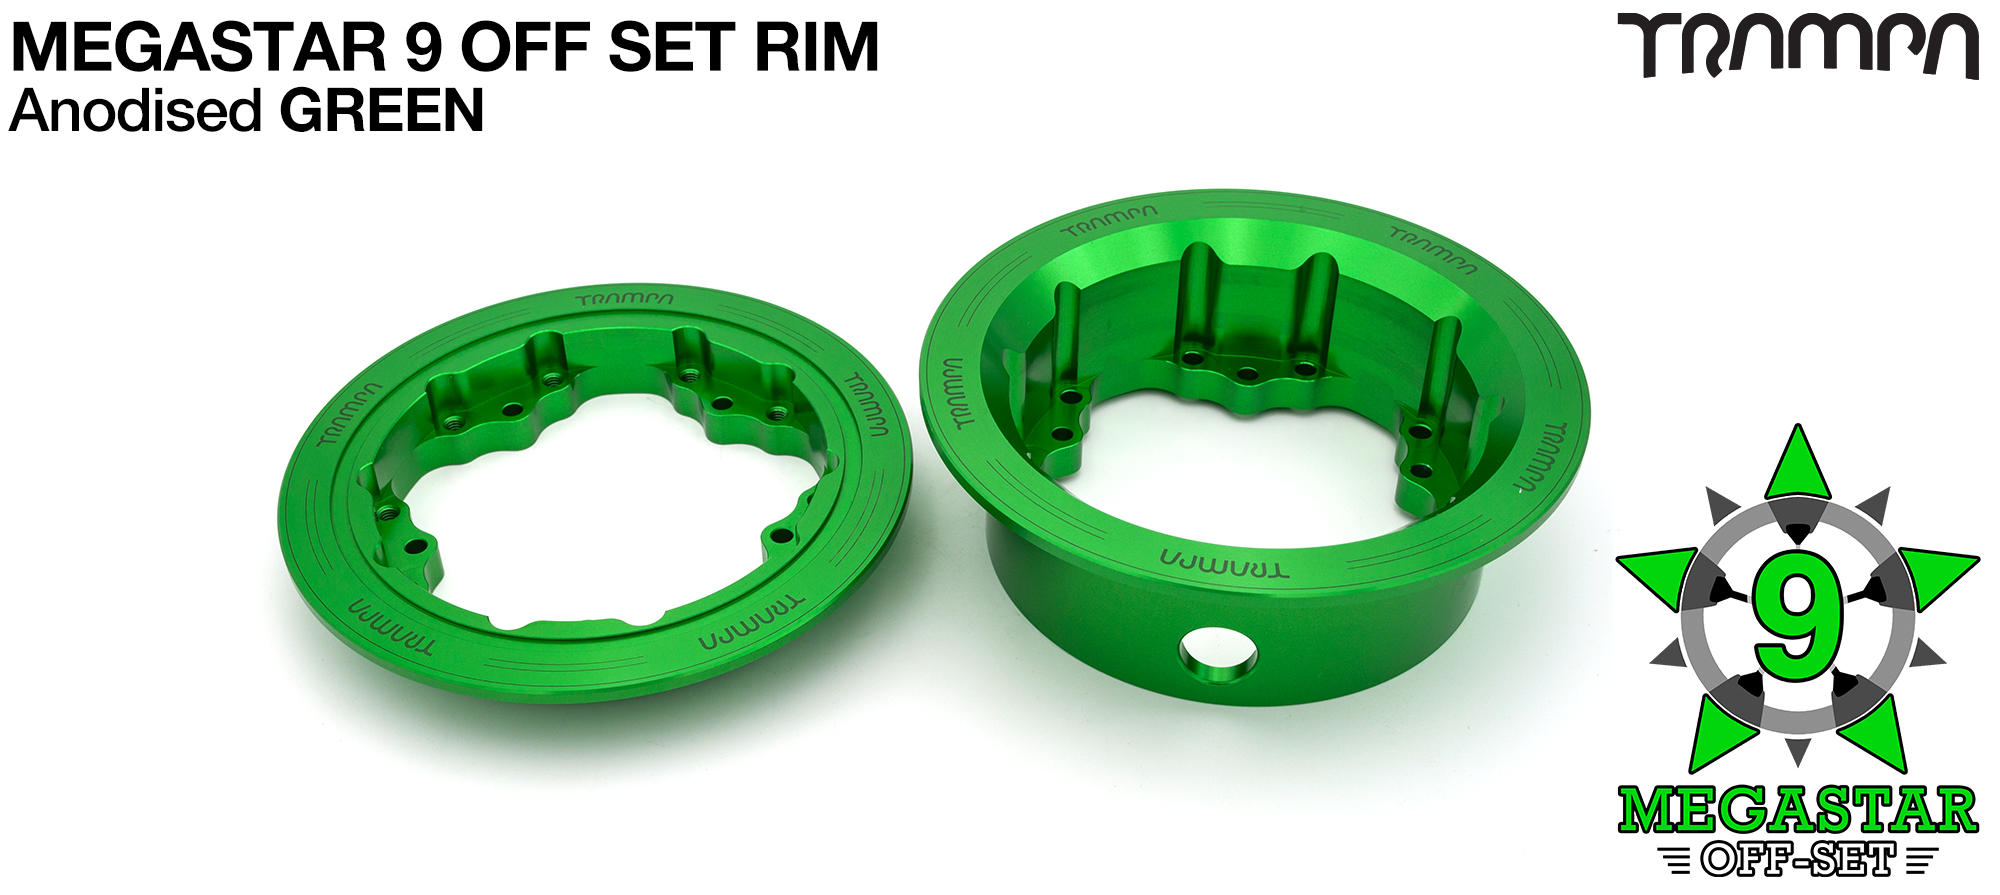 9 inch Deep-Dish MEGASTAR Rims on the REAR - GREEN